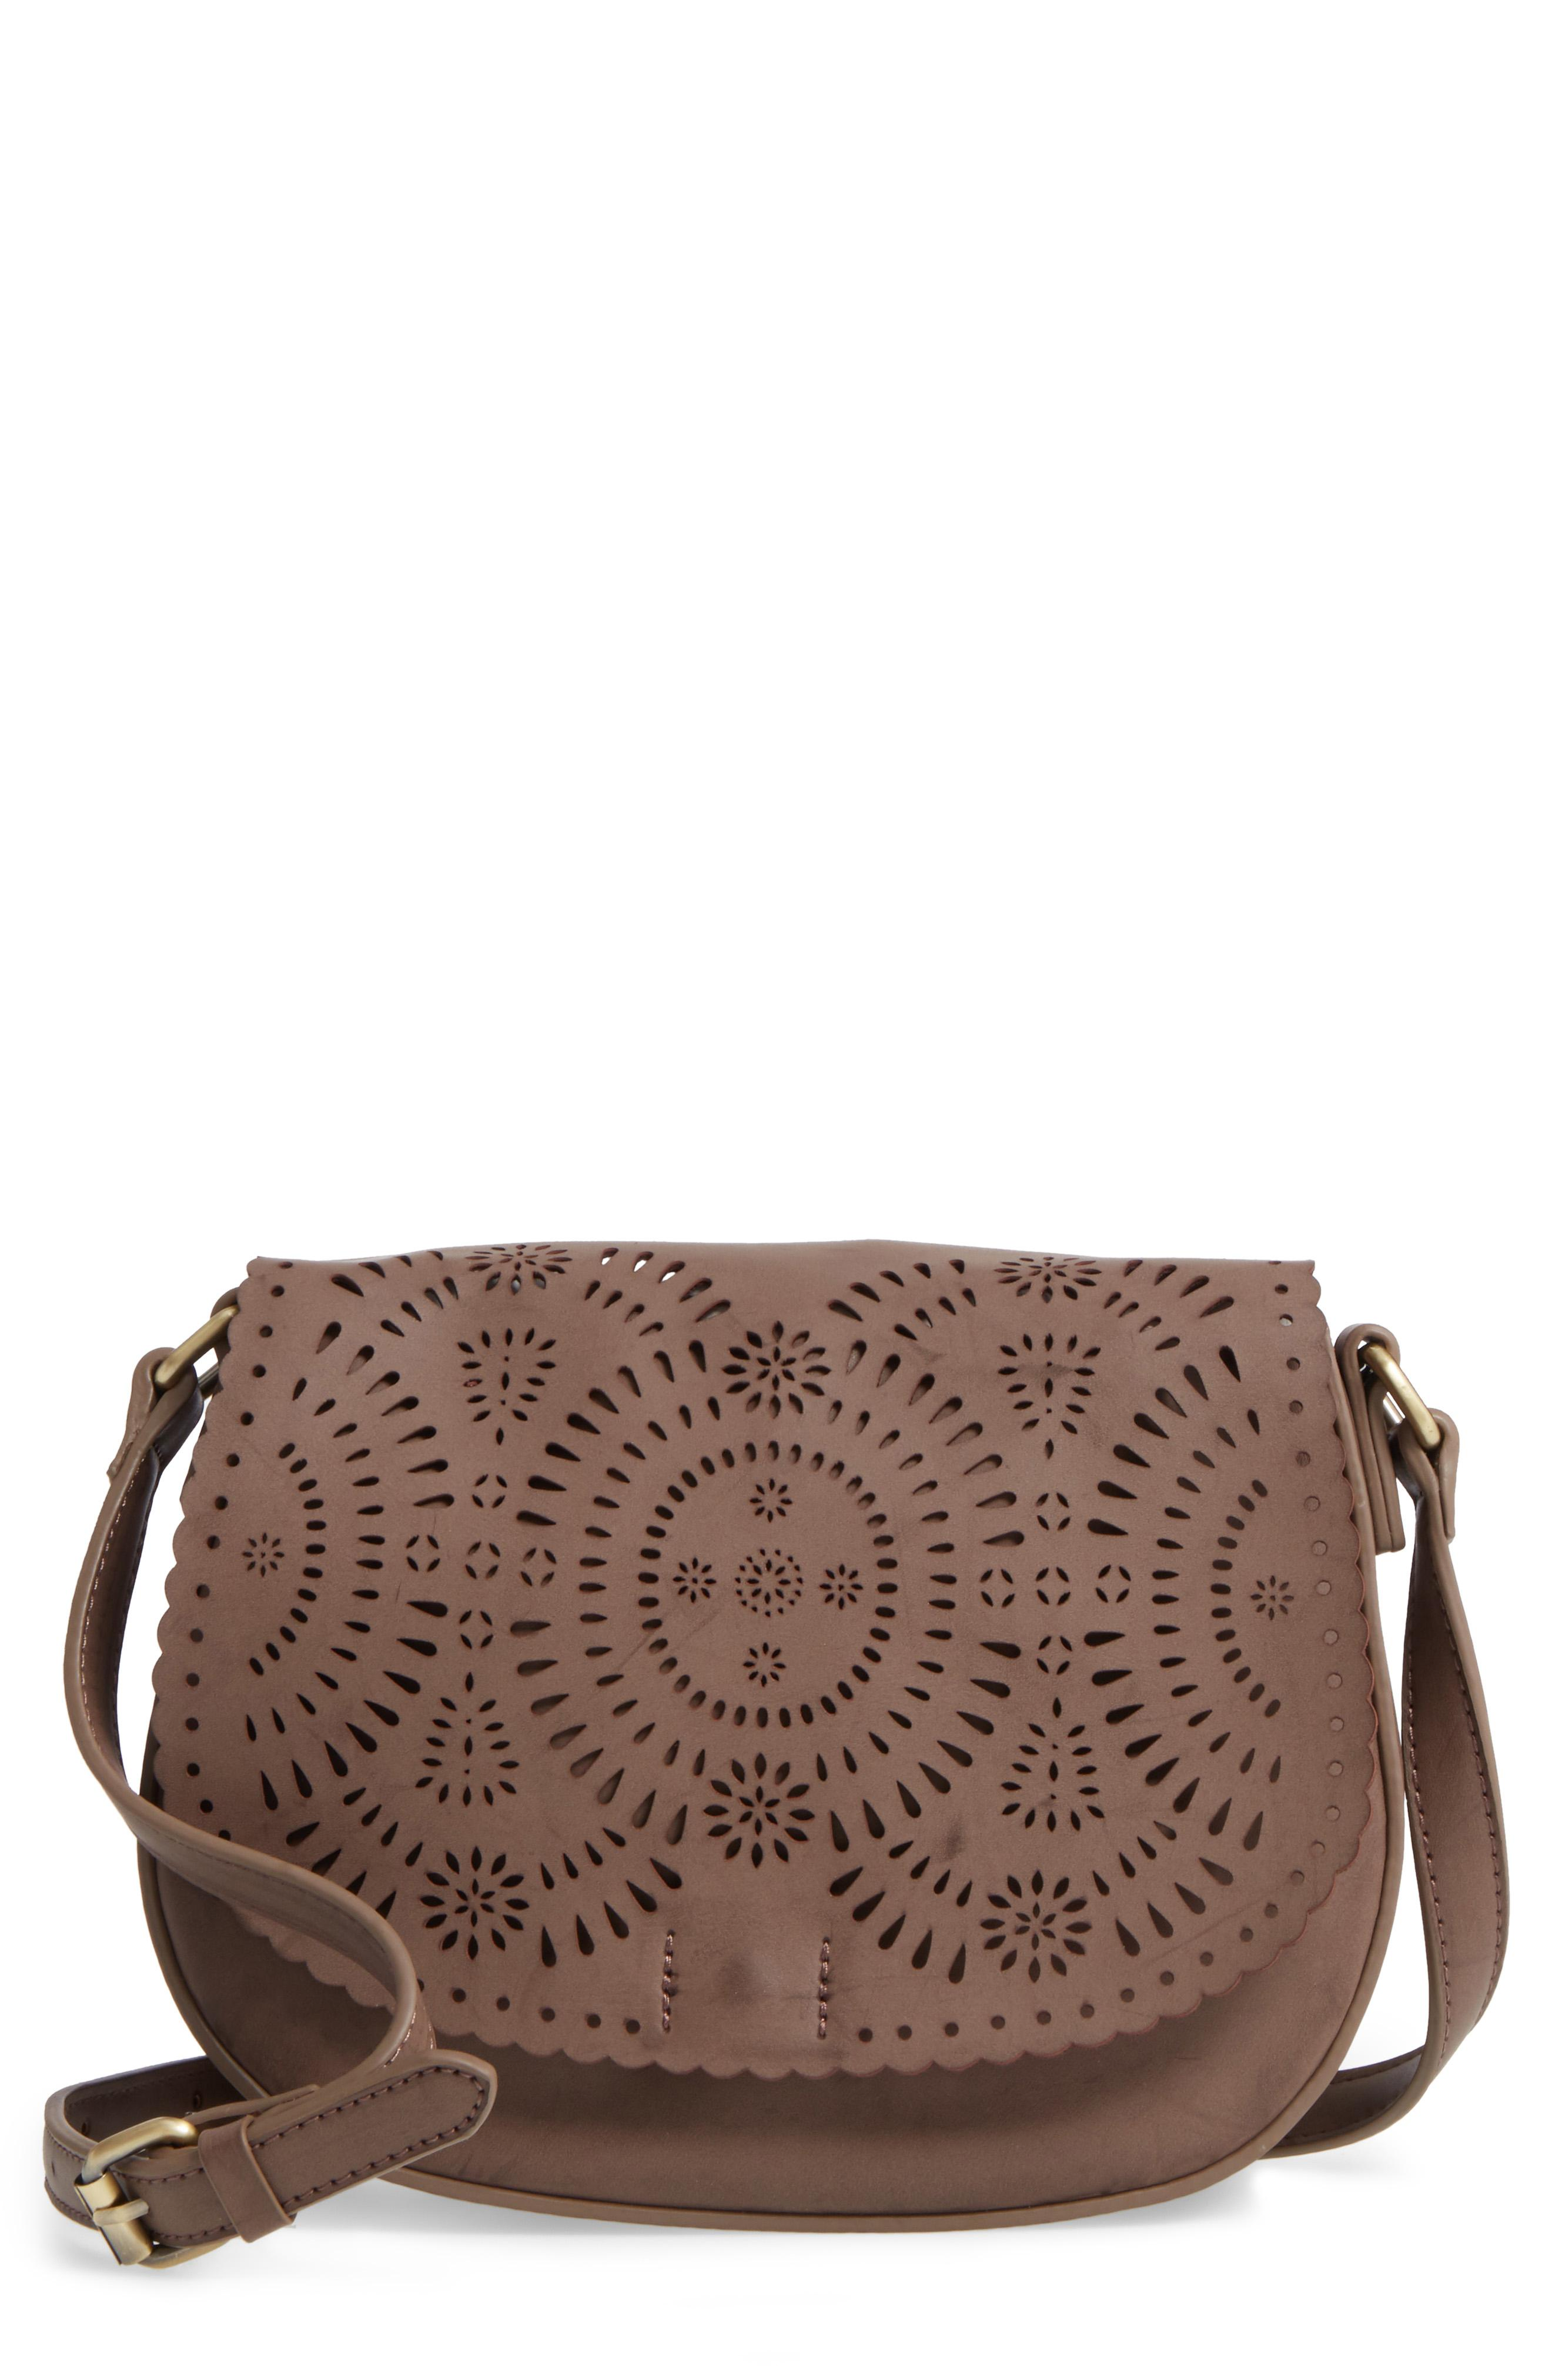 Shiraleah Dakota Faux Leather Saddle Bag from Nordstrom // Price: $40.00 //{&amp;nbsp;}(Image: Nordstrom // Nordstrom.com){&amp;nbsp;}<p></p>